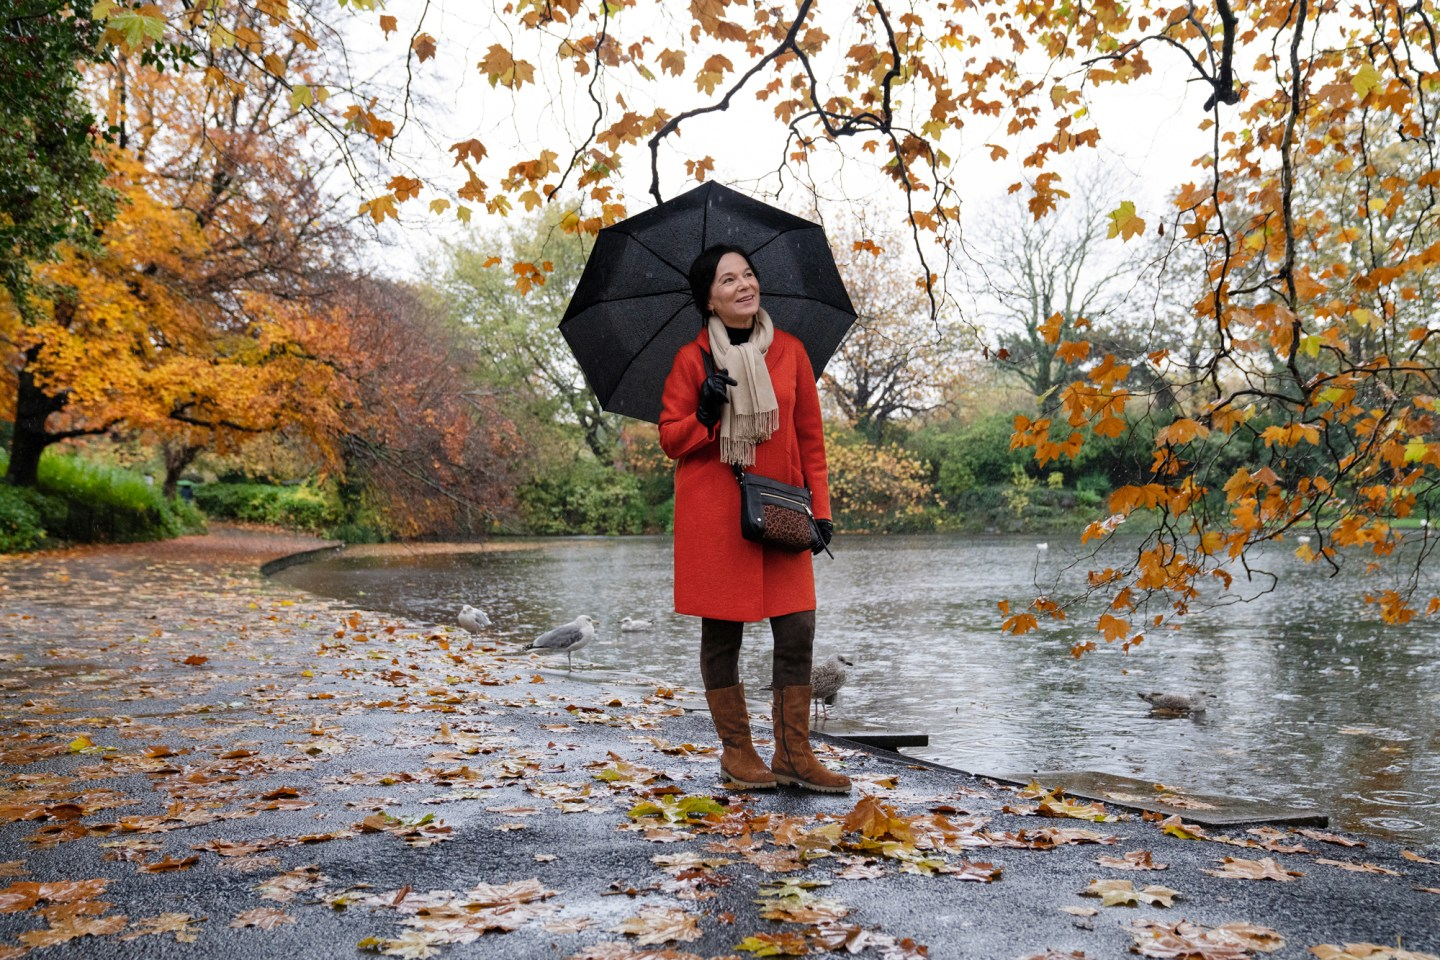 LadyofStyle ara shoes Reise Irland Dublin Herbst Winter Stiefel bequem